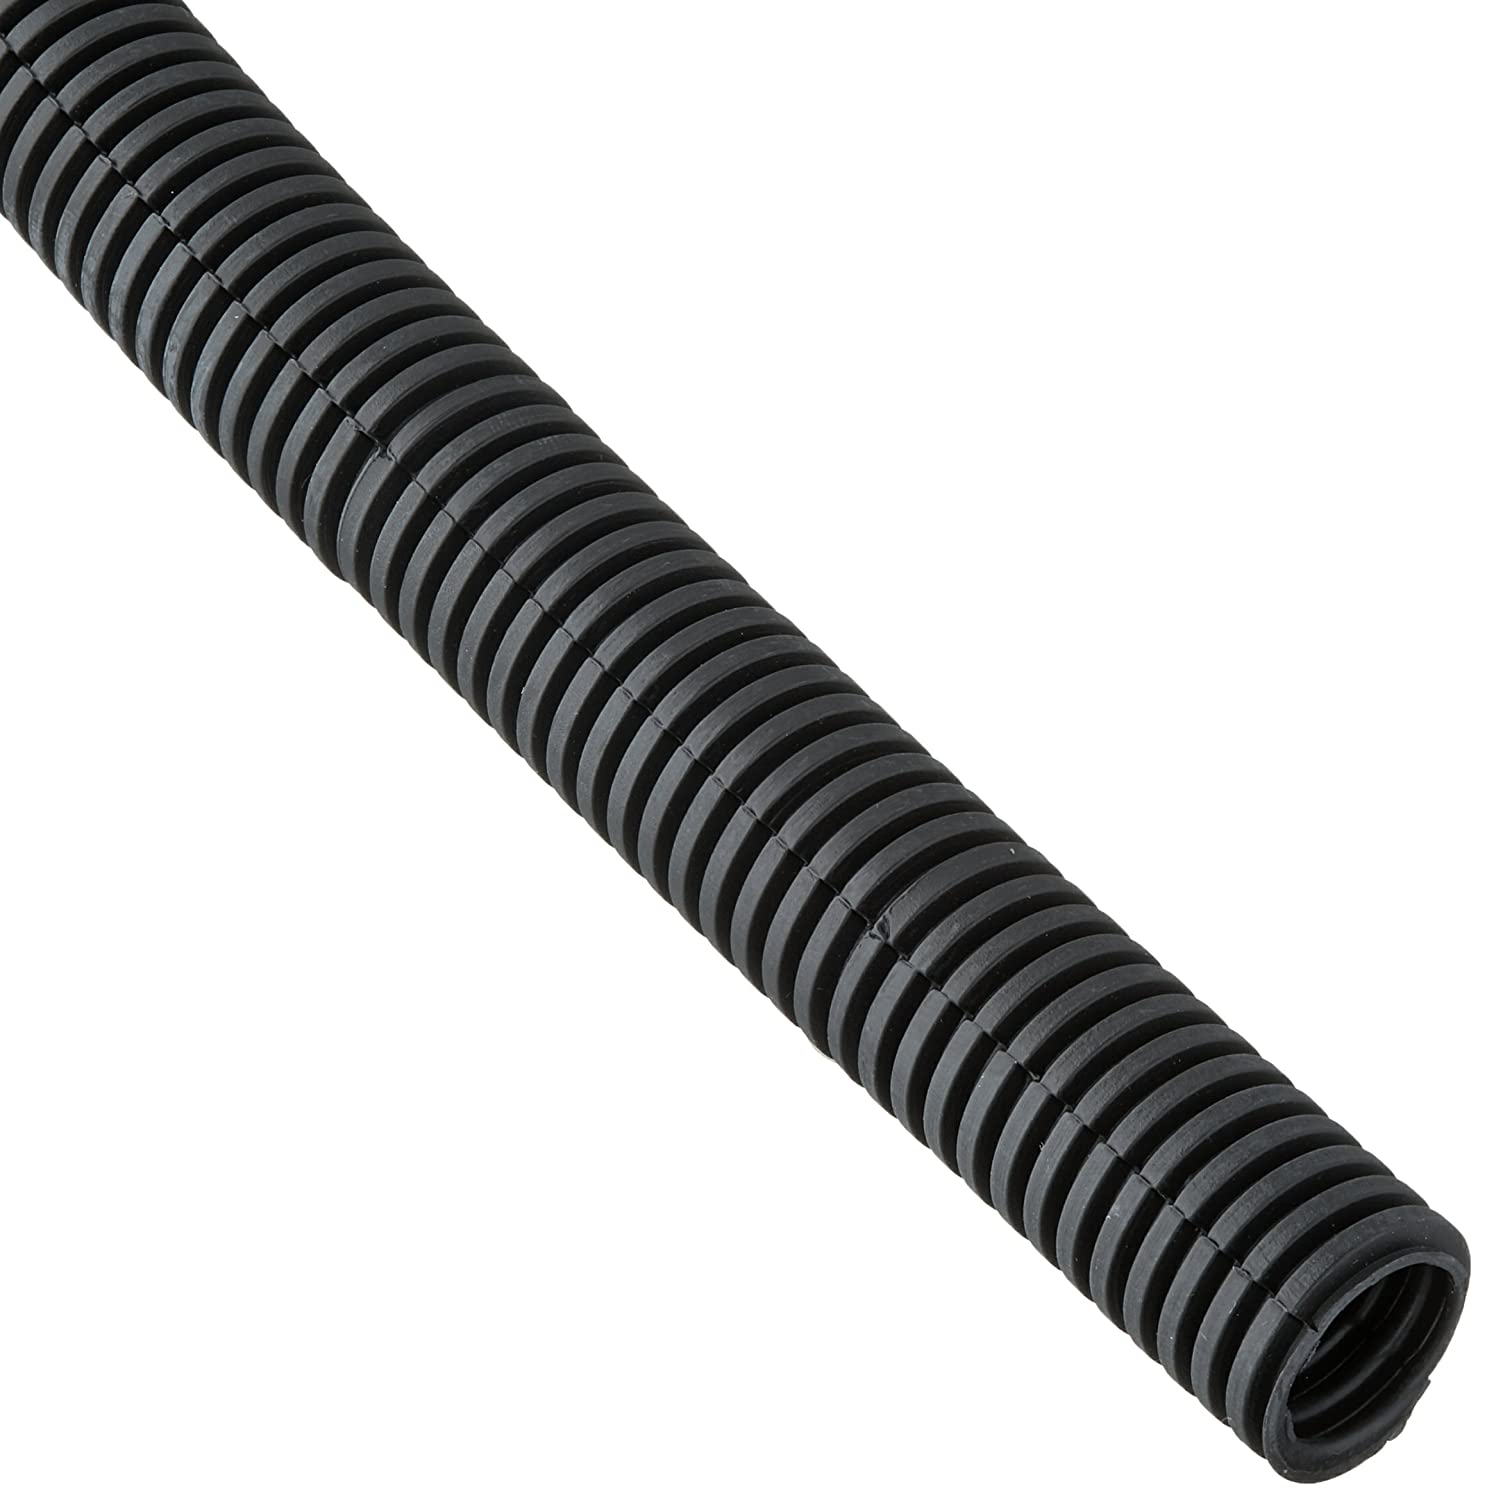 Dometic Parts 2932749159 Drain Hose 4-1/2' Length